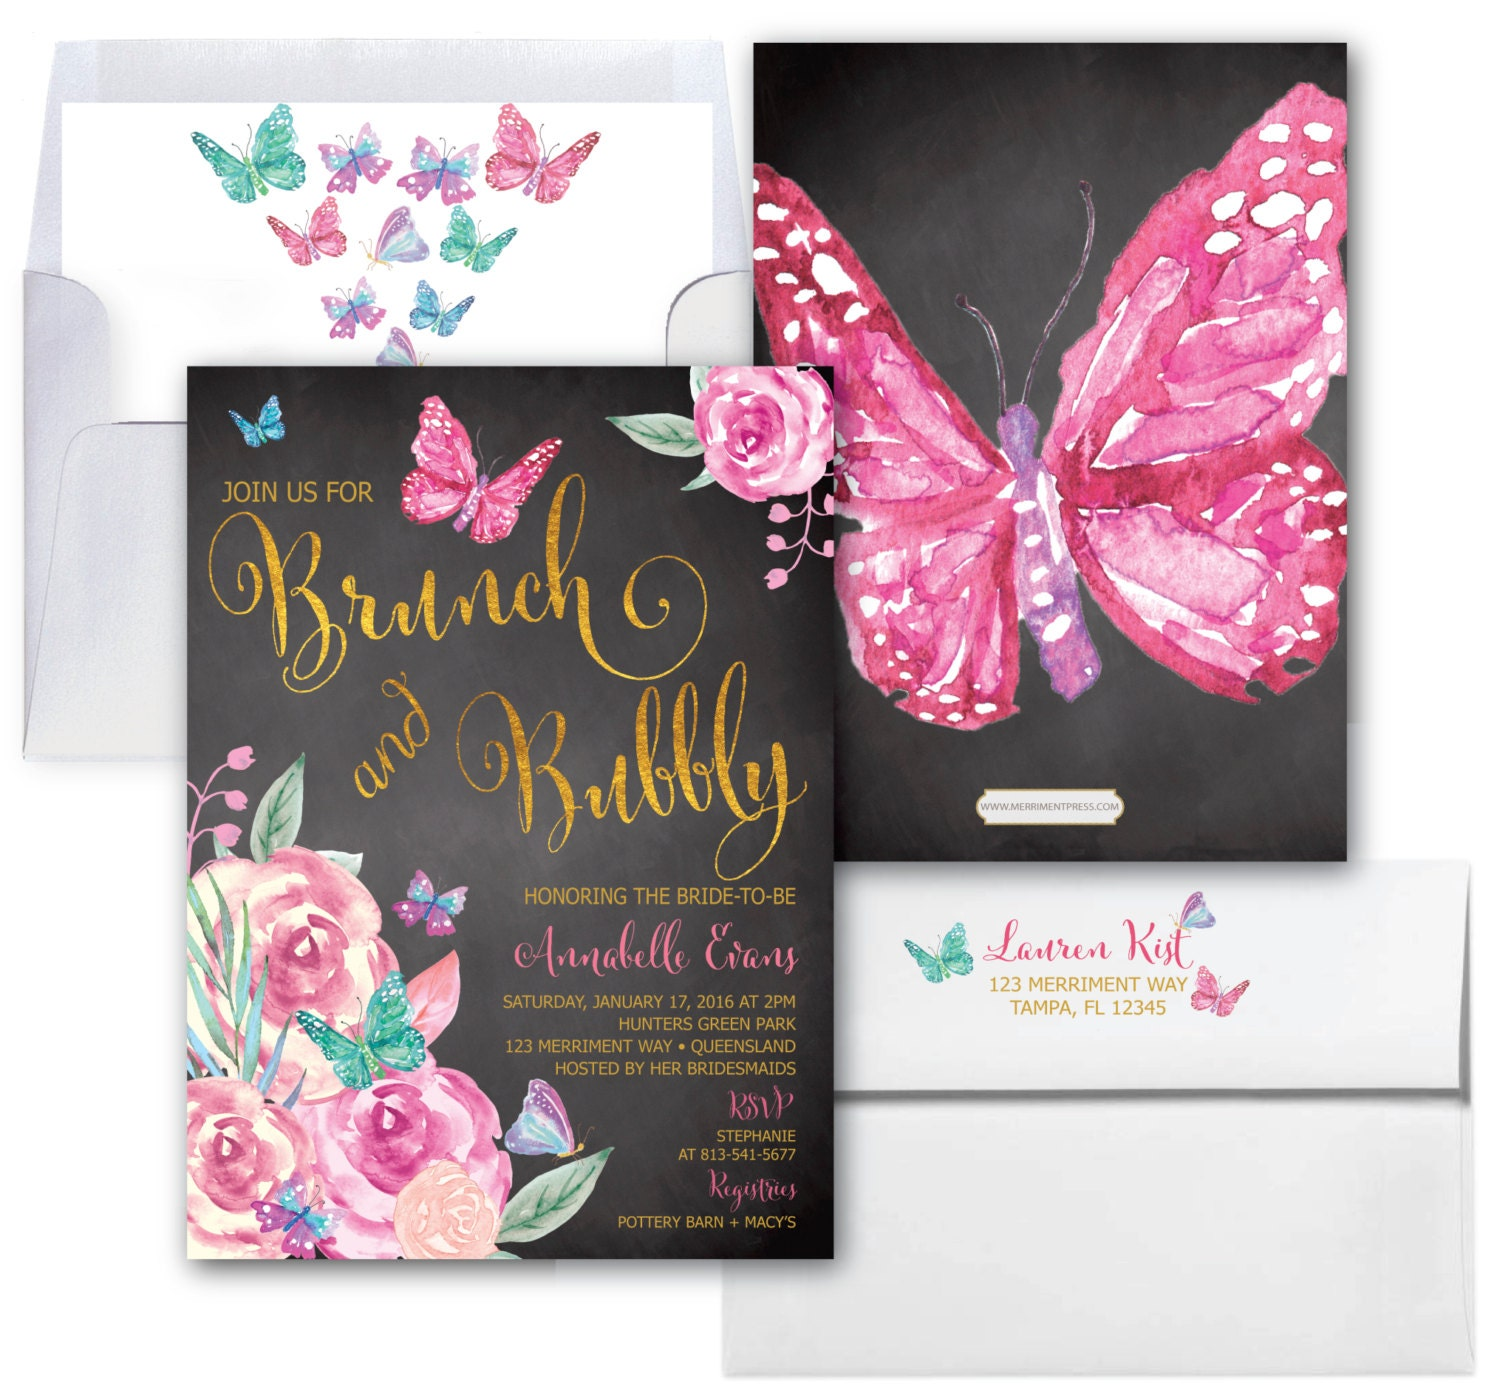 butterfly brunch and bubbly invitation butterflies bridal shower invite butterfly floral chalkboard watercolor victoria collection